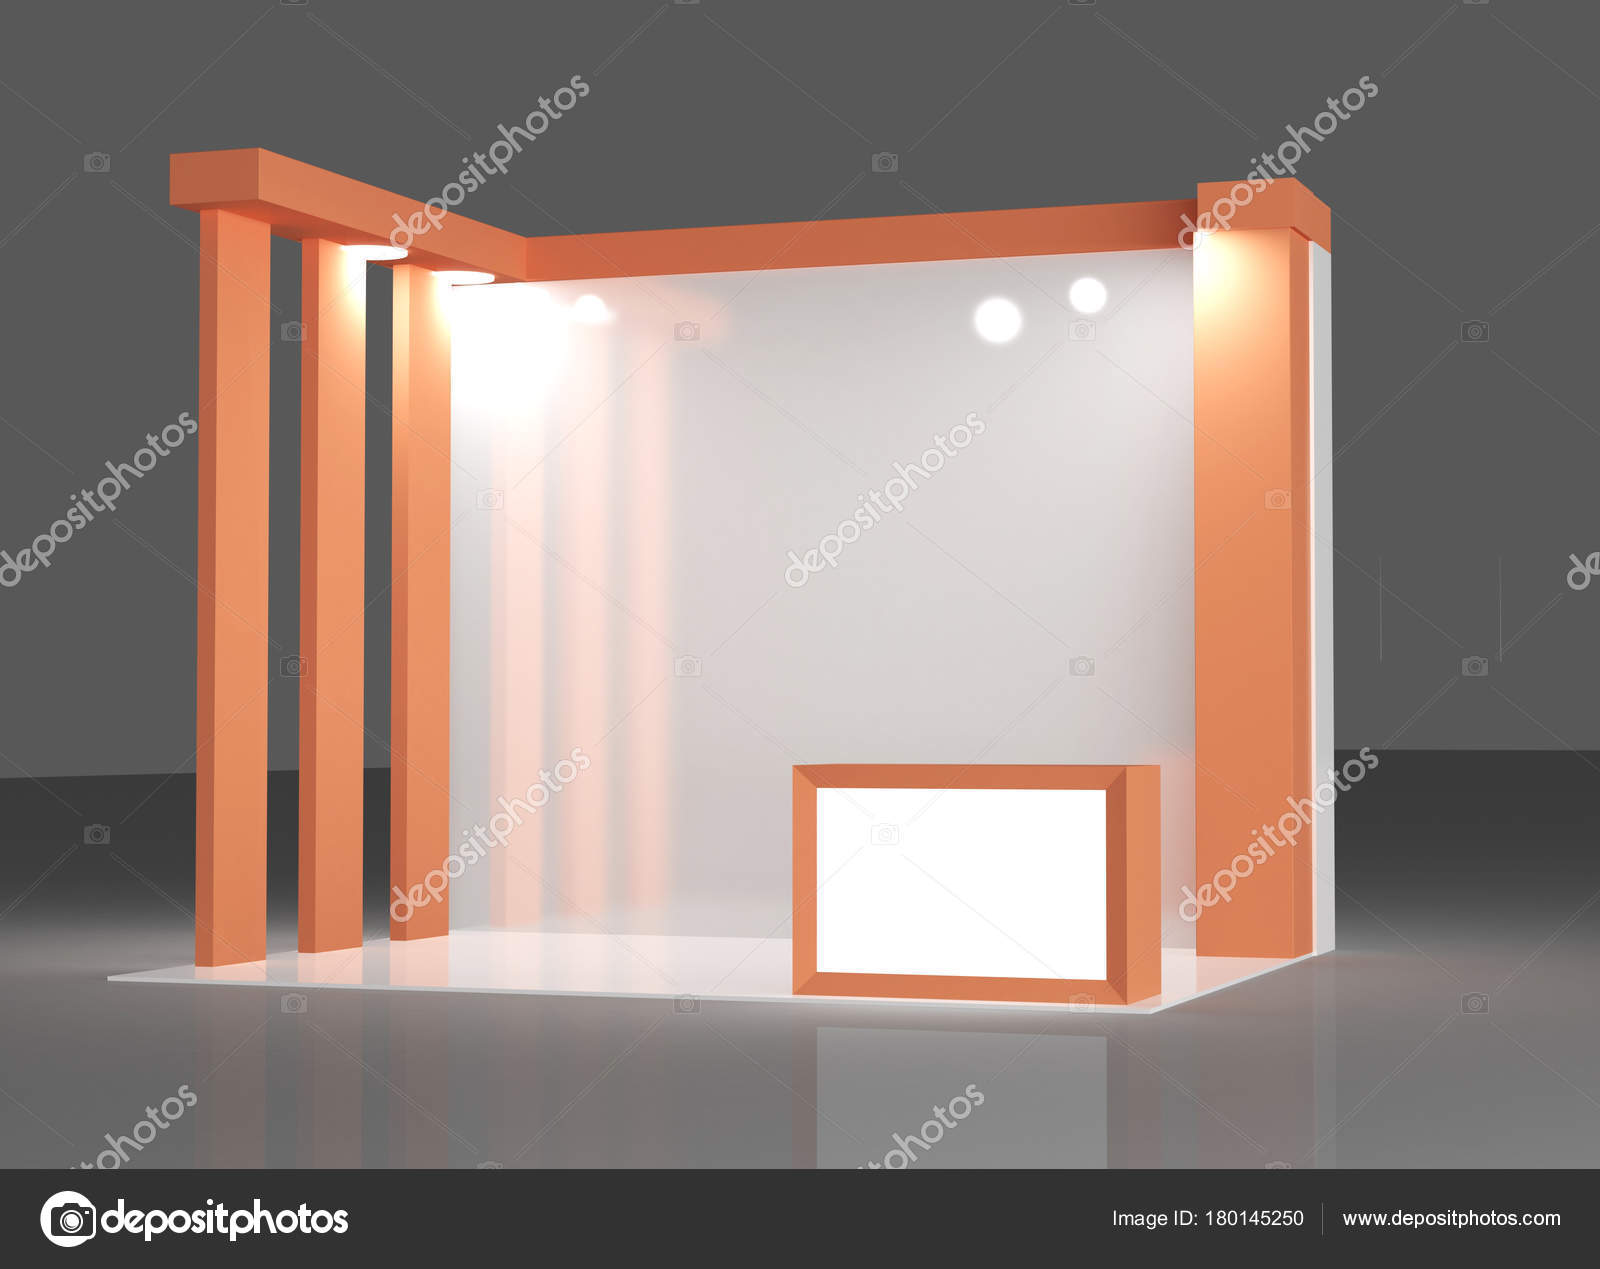 D Exhibition Stand Free Download : Red exhibition stand 3d rendering u2014 stock photo © klllane #180145250